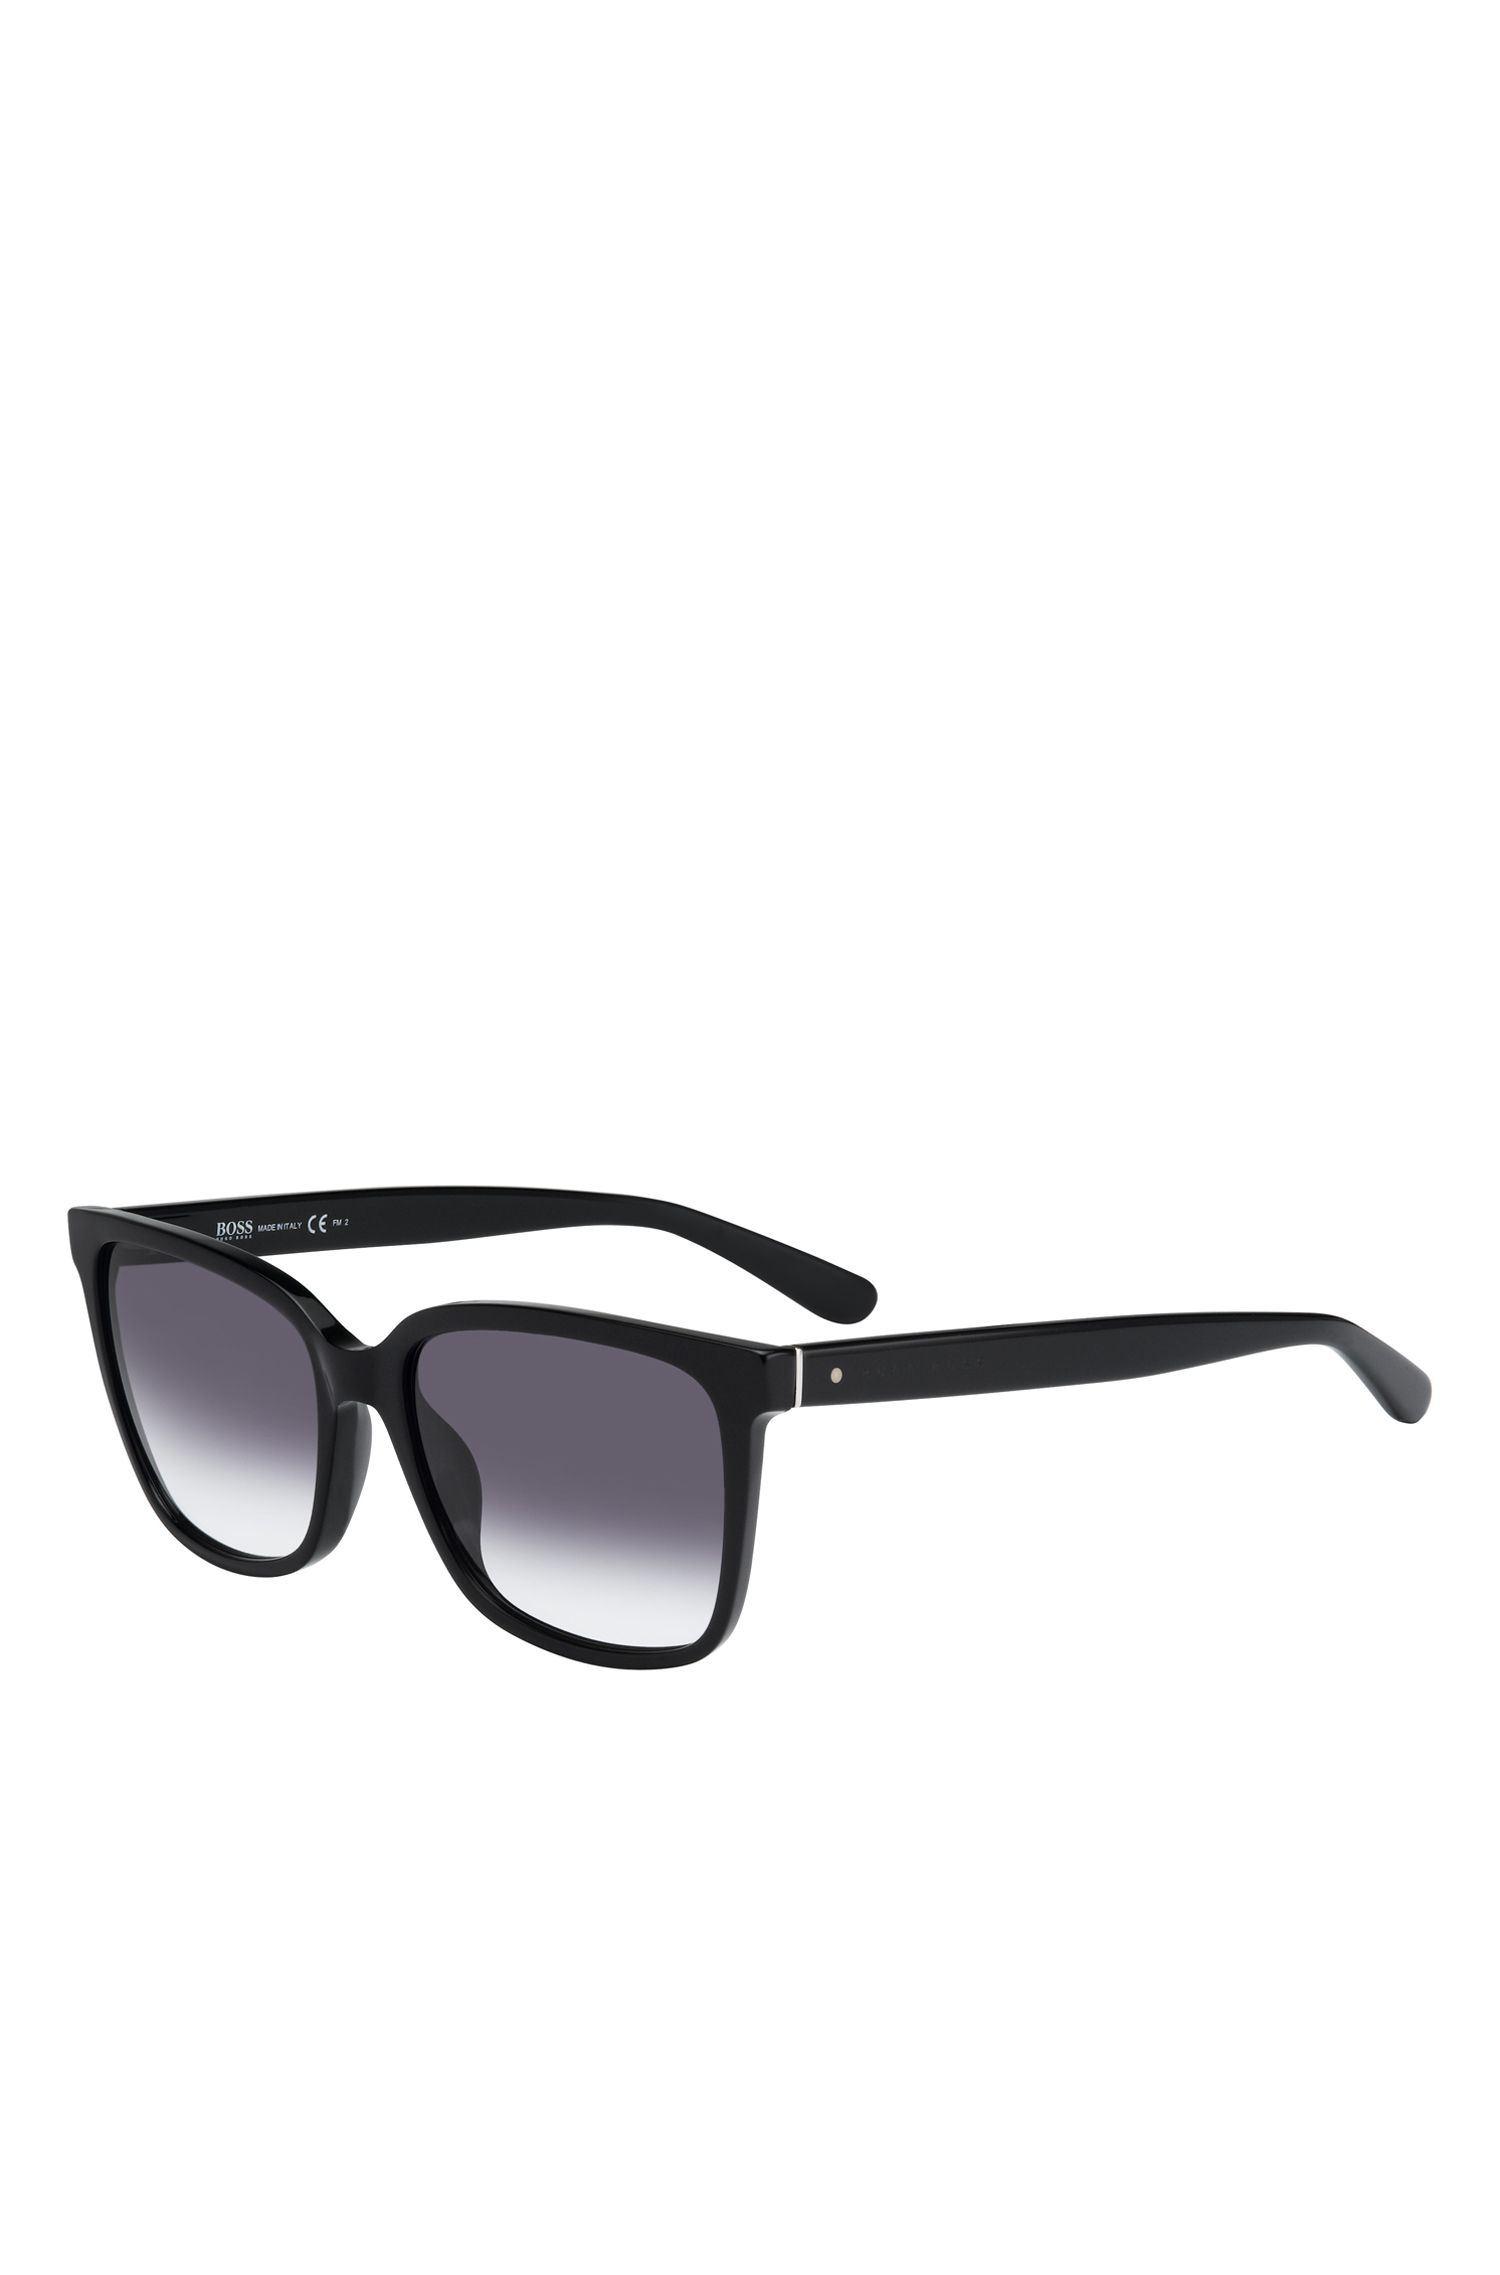 'BOSS 0787S' | Gradient Lens Rectangular Sunglasses